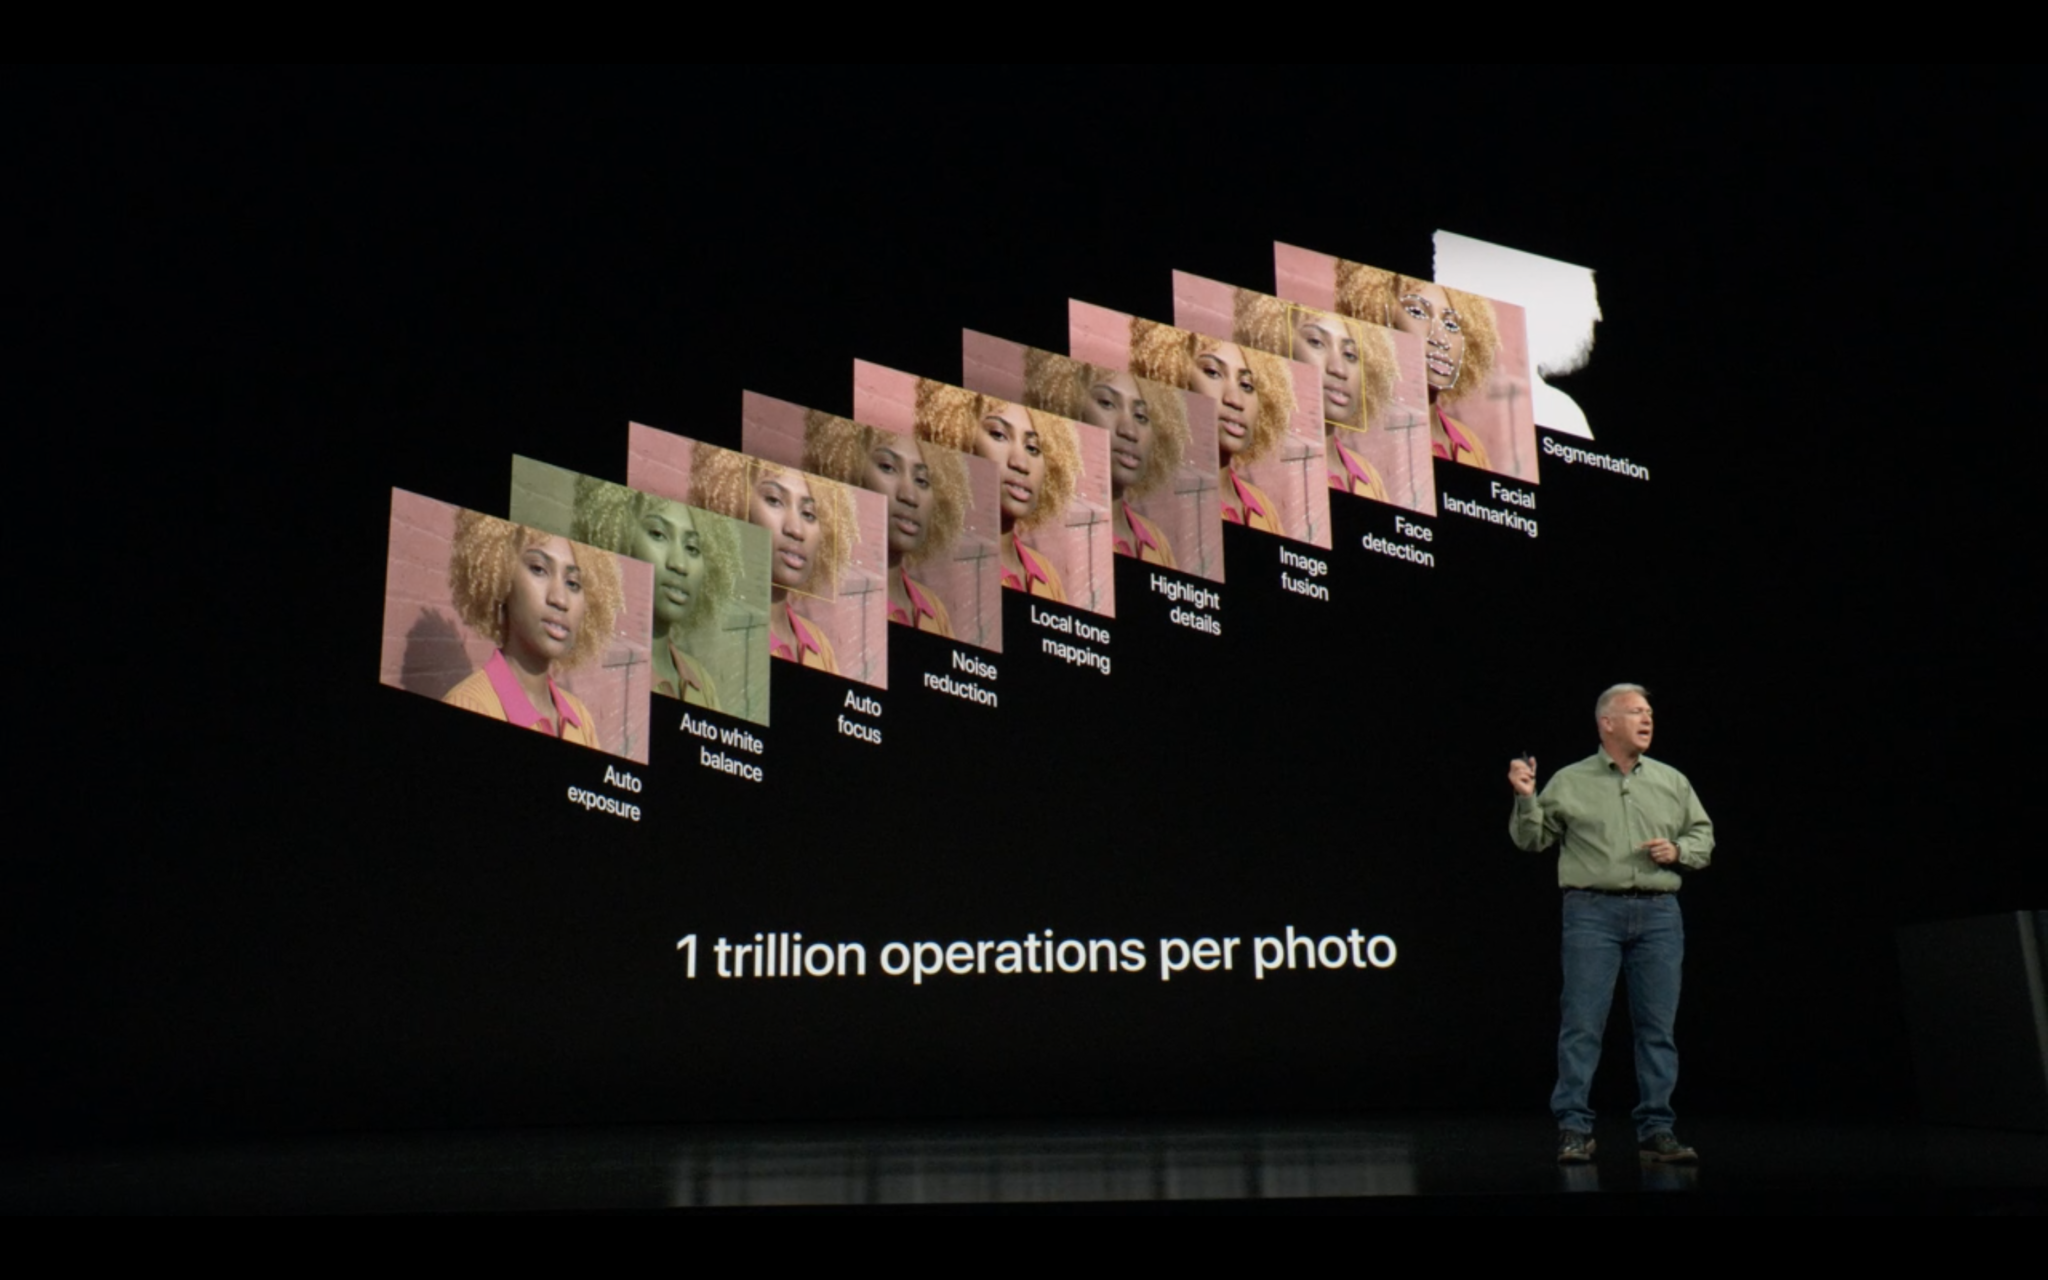 The Apple iPhone XS Has a Camera that Does 1 Trillion Operations Per Photo